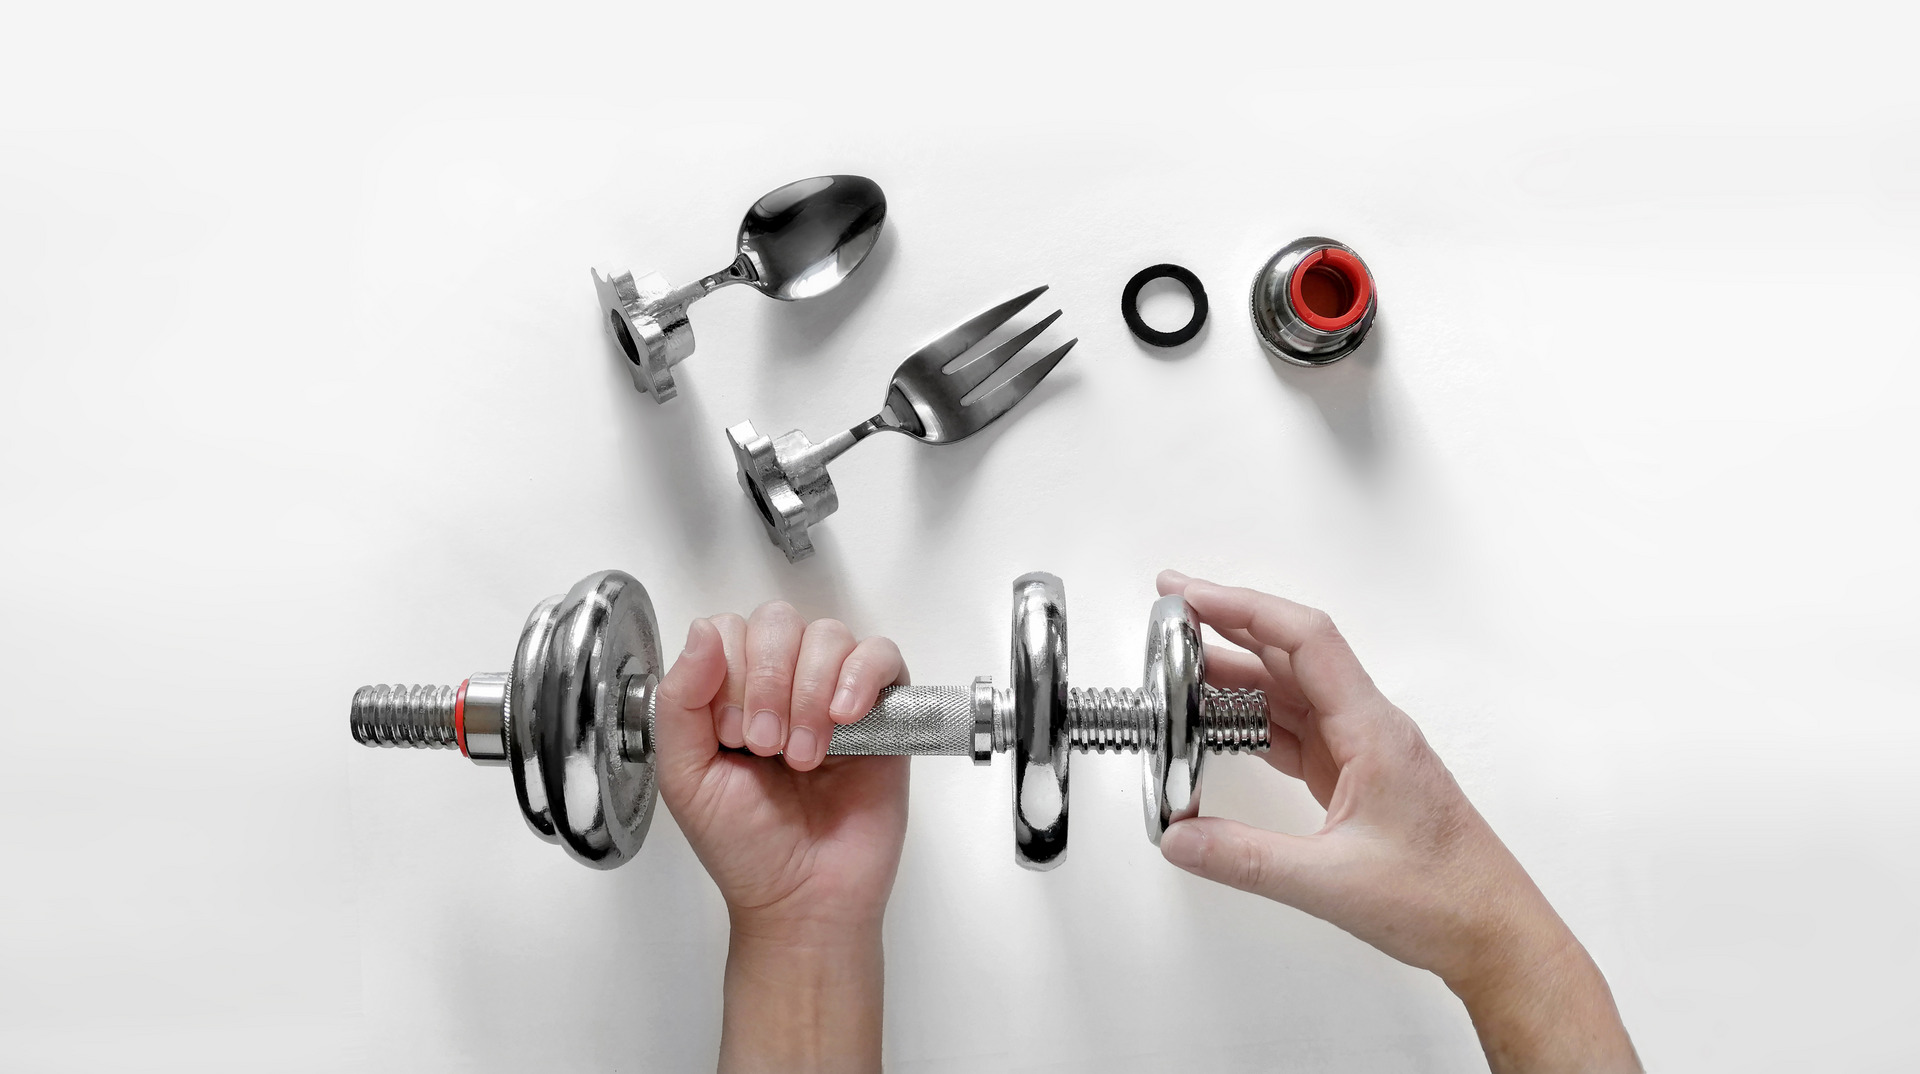 Adjust the weight of dumbbell cutlery